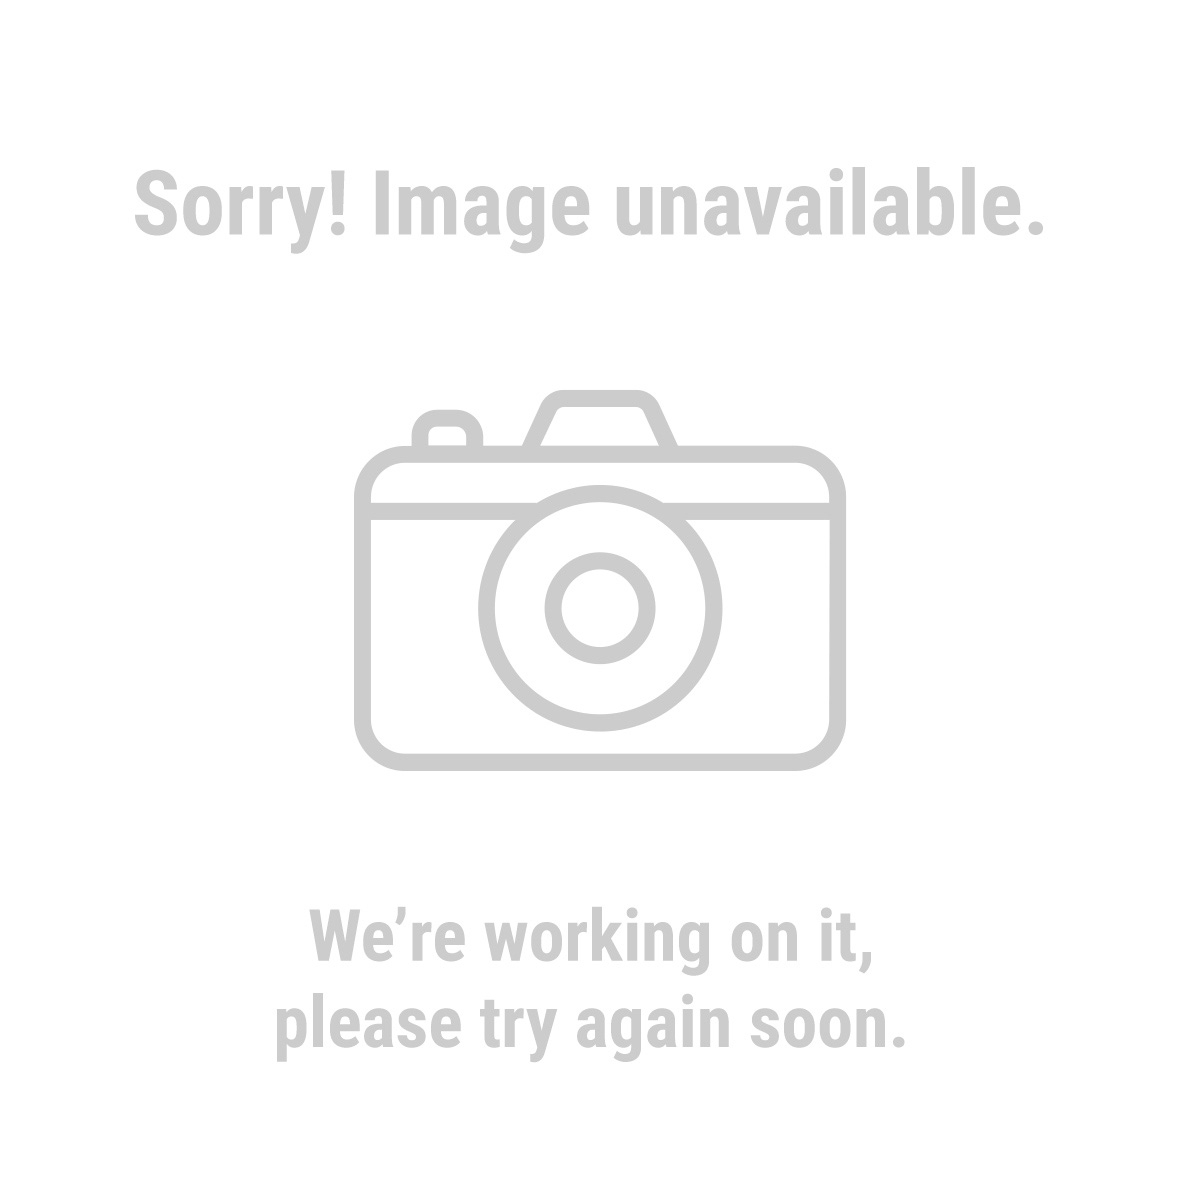 Haul-Master 97429 2 Piece Steel Wheel Chocks